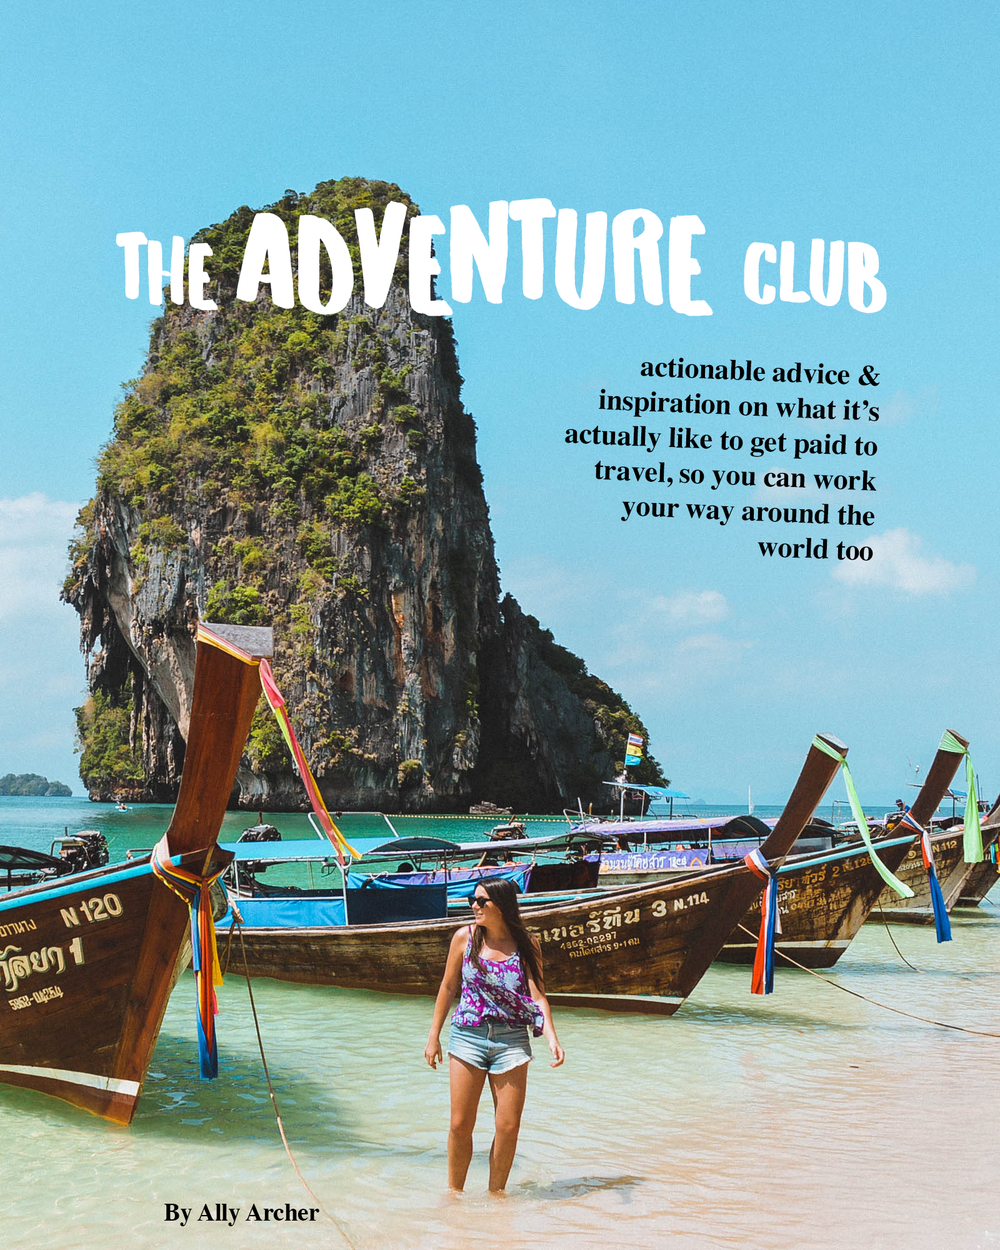 The Adventure Club book - Sydney, Australia Travel | 2017 Travel Year in Review + Travel and Blog Goals for 2018 | goseekexplore.com